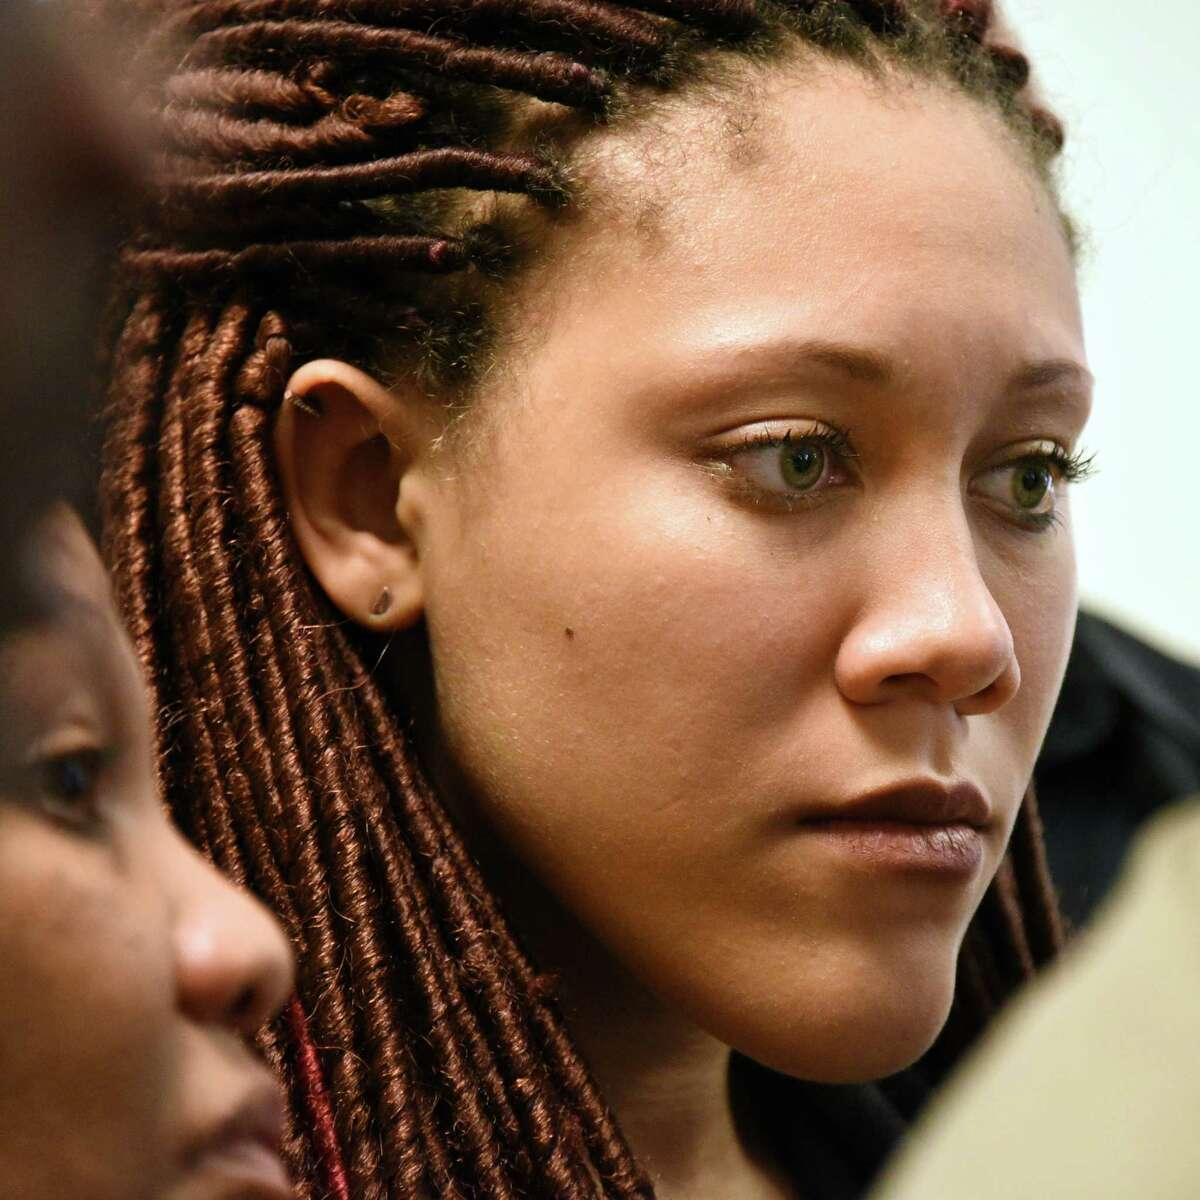 Former UAlbany student Ariel Agudio leaves County Court after being found guilty of false reporting but not guilty of assault on a CDTA bus last year Wednesday April 26, 2017 in Albany,NY. (John Carl D'Annibale / Times Union)